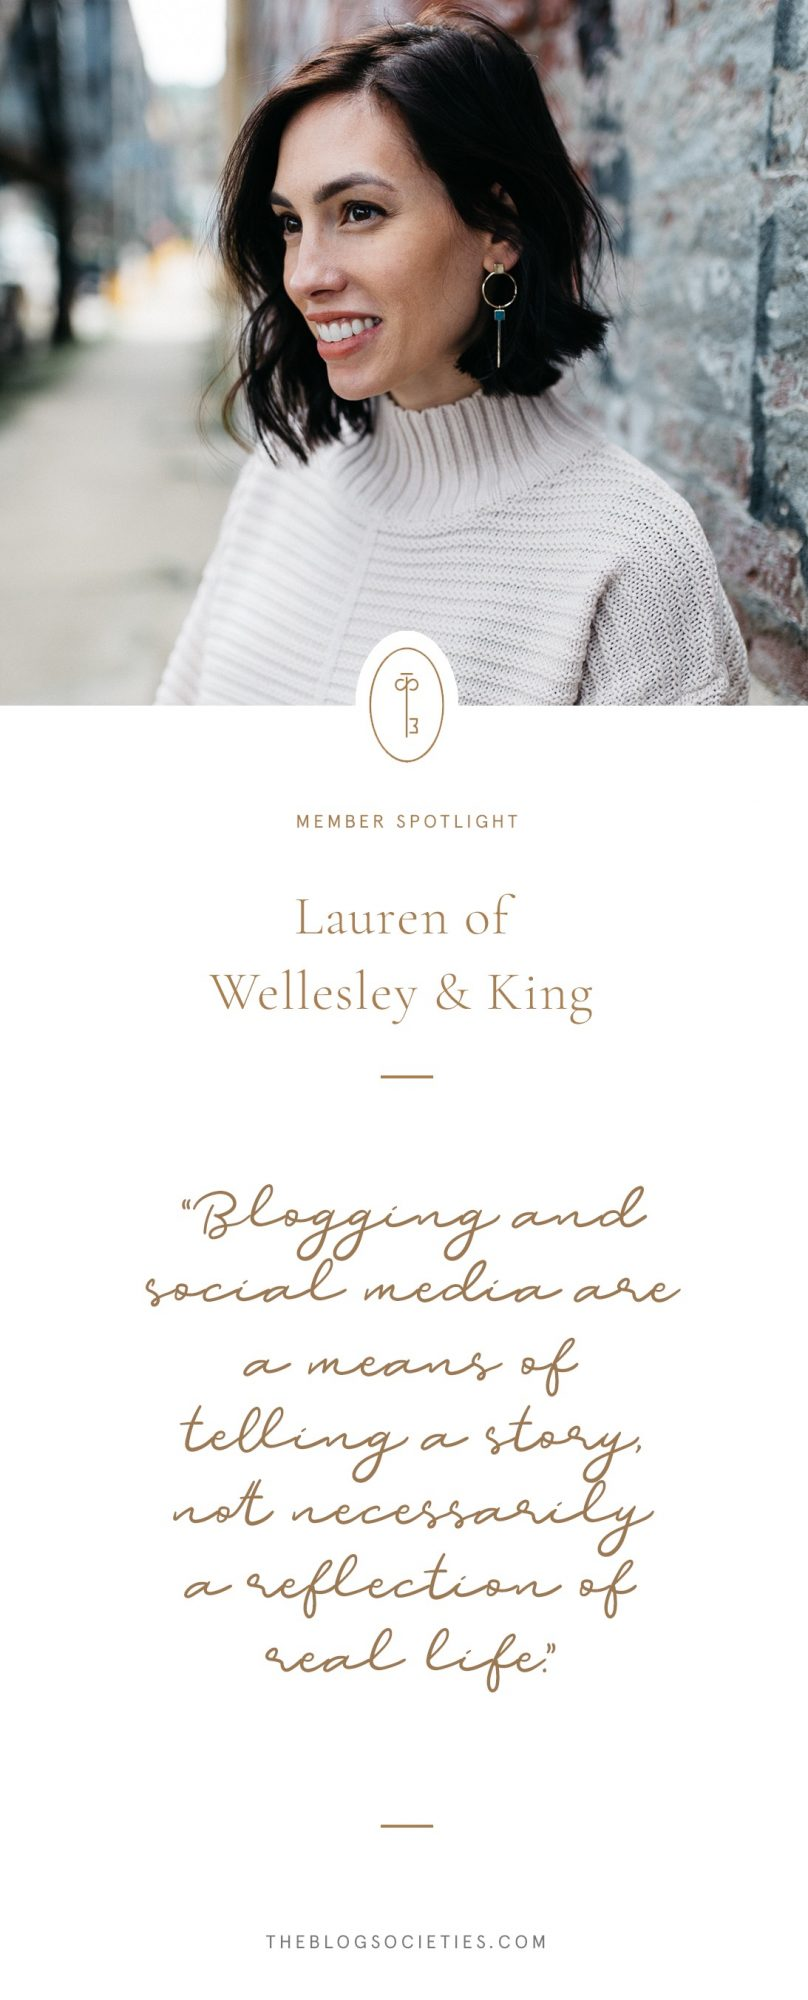 Wellesley & King Blog